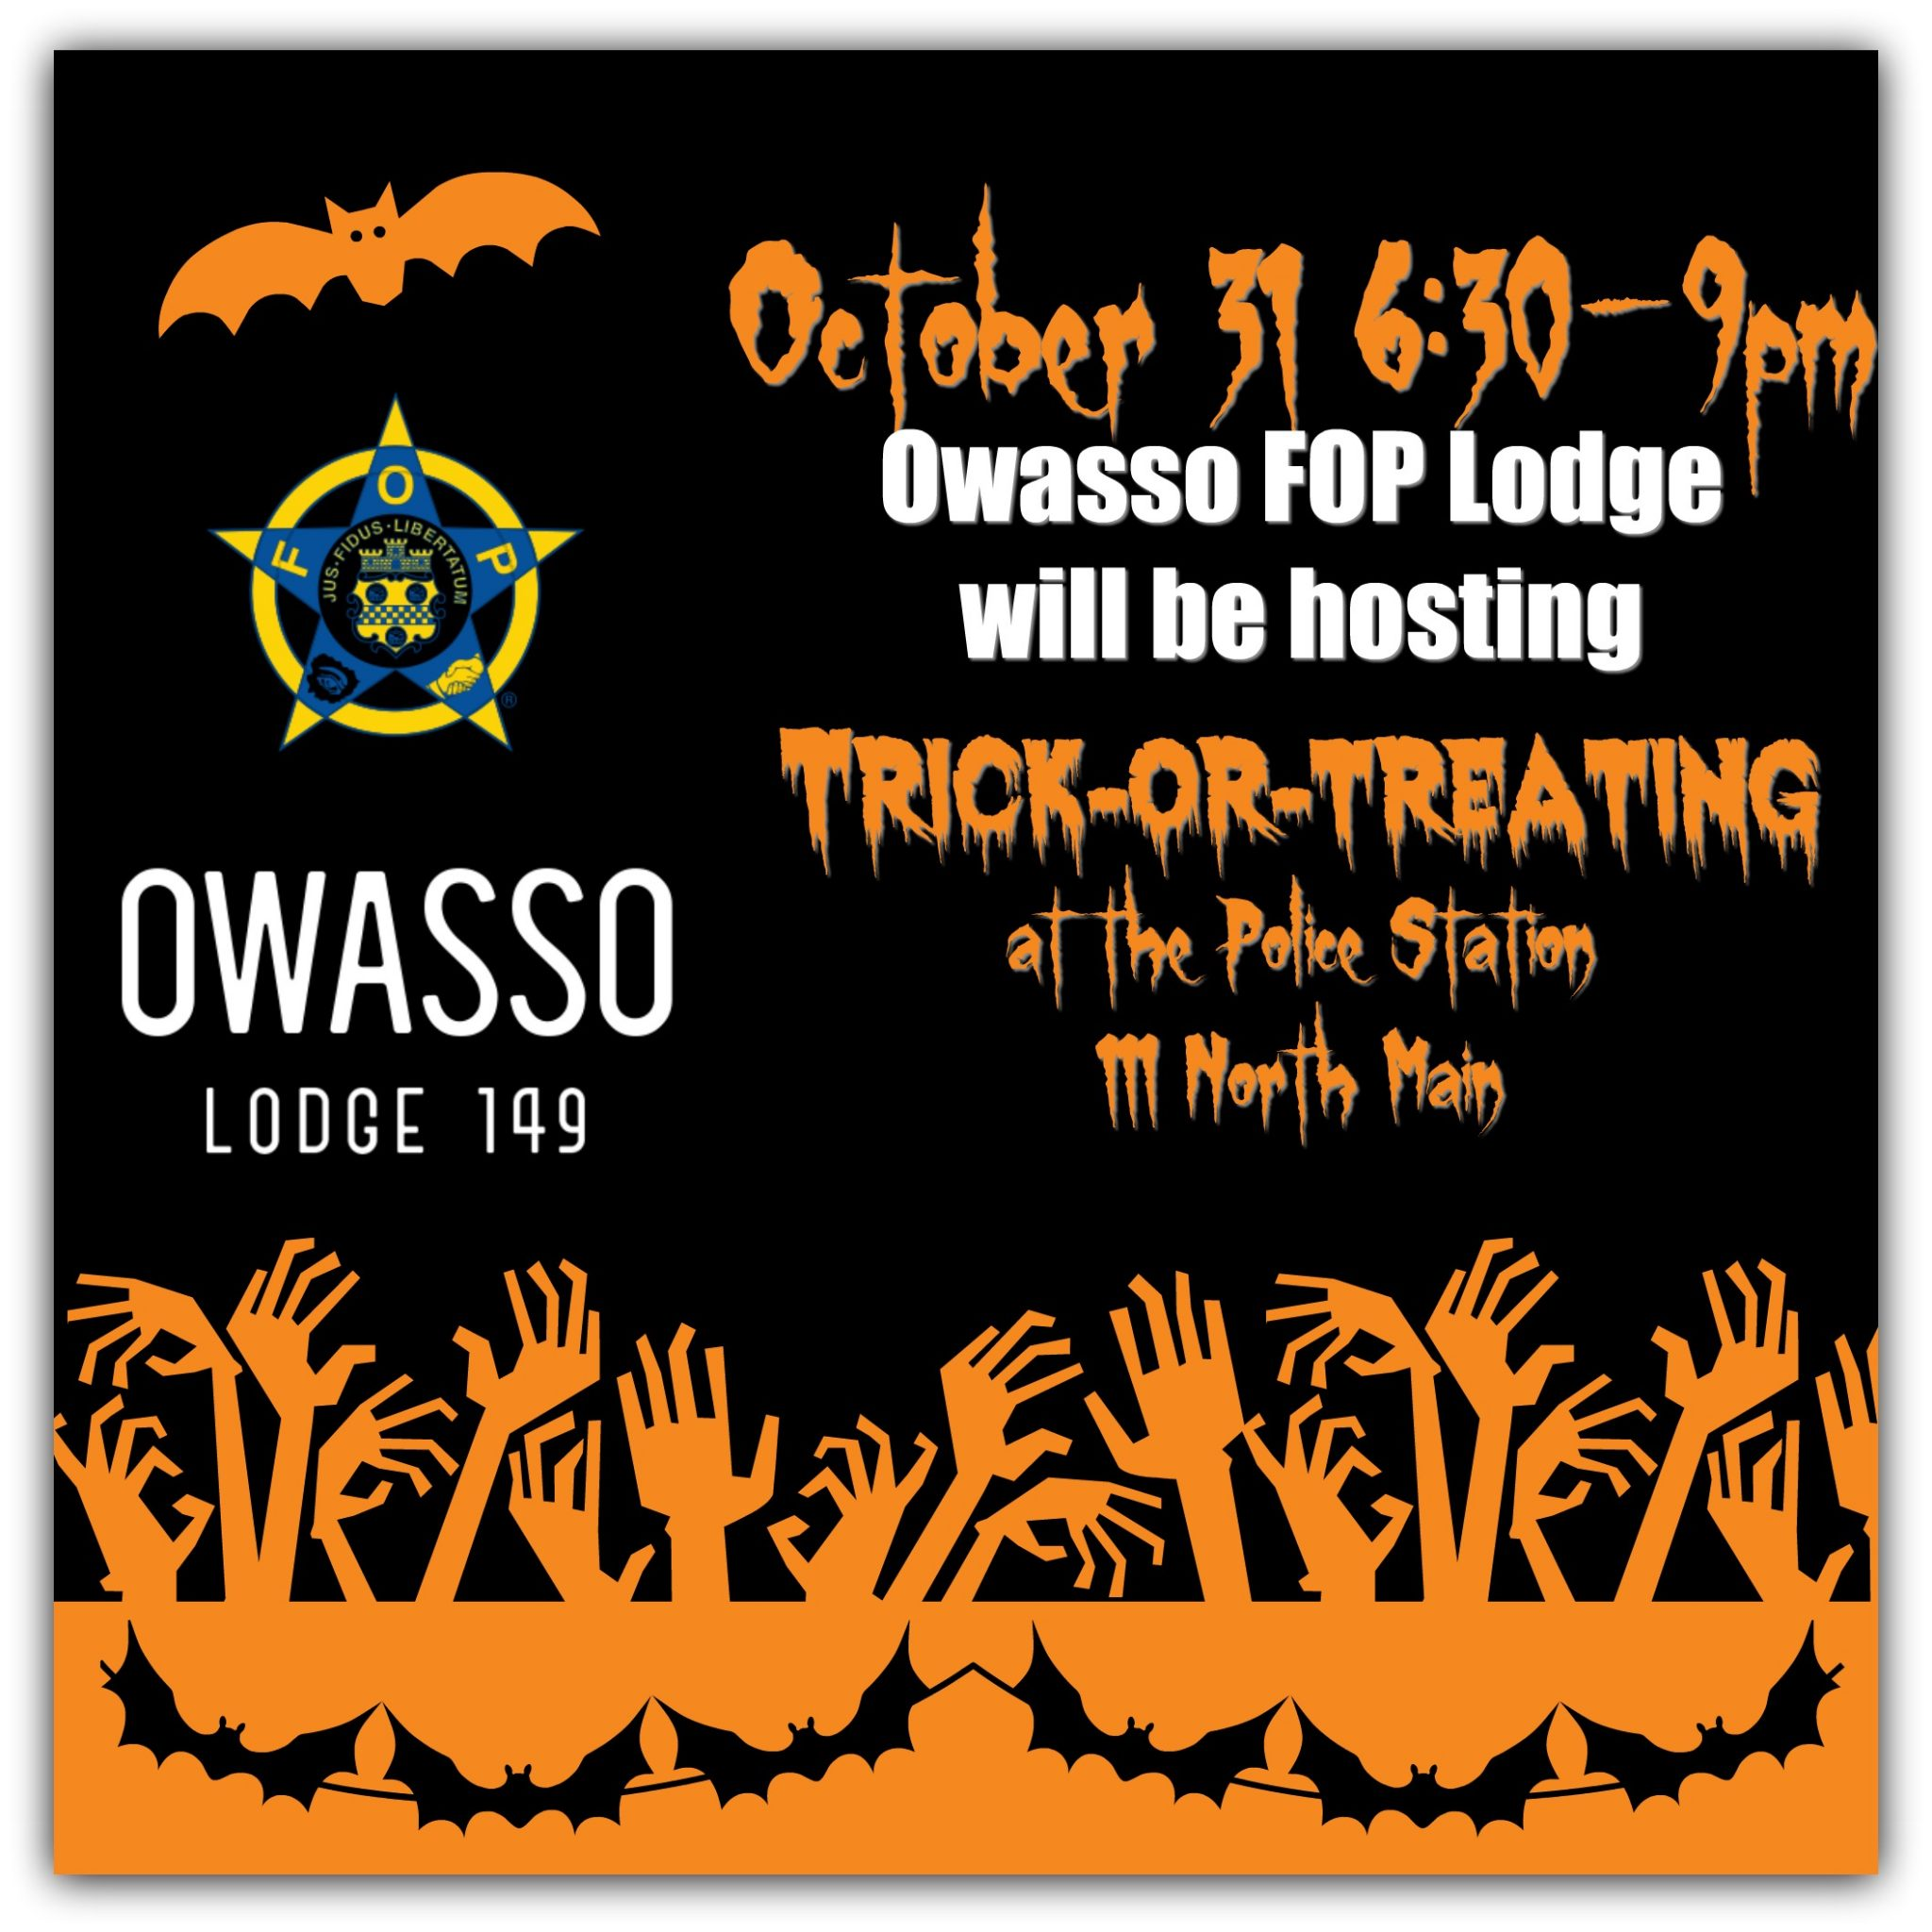 Trick or treat tuesday at the owasso police department for Acapulco golden tans salon owasso ok